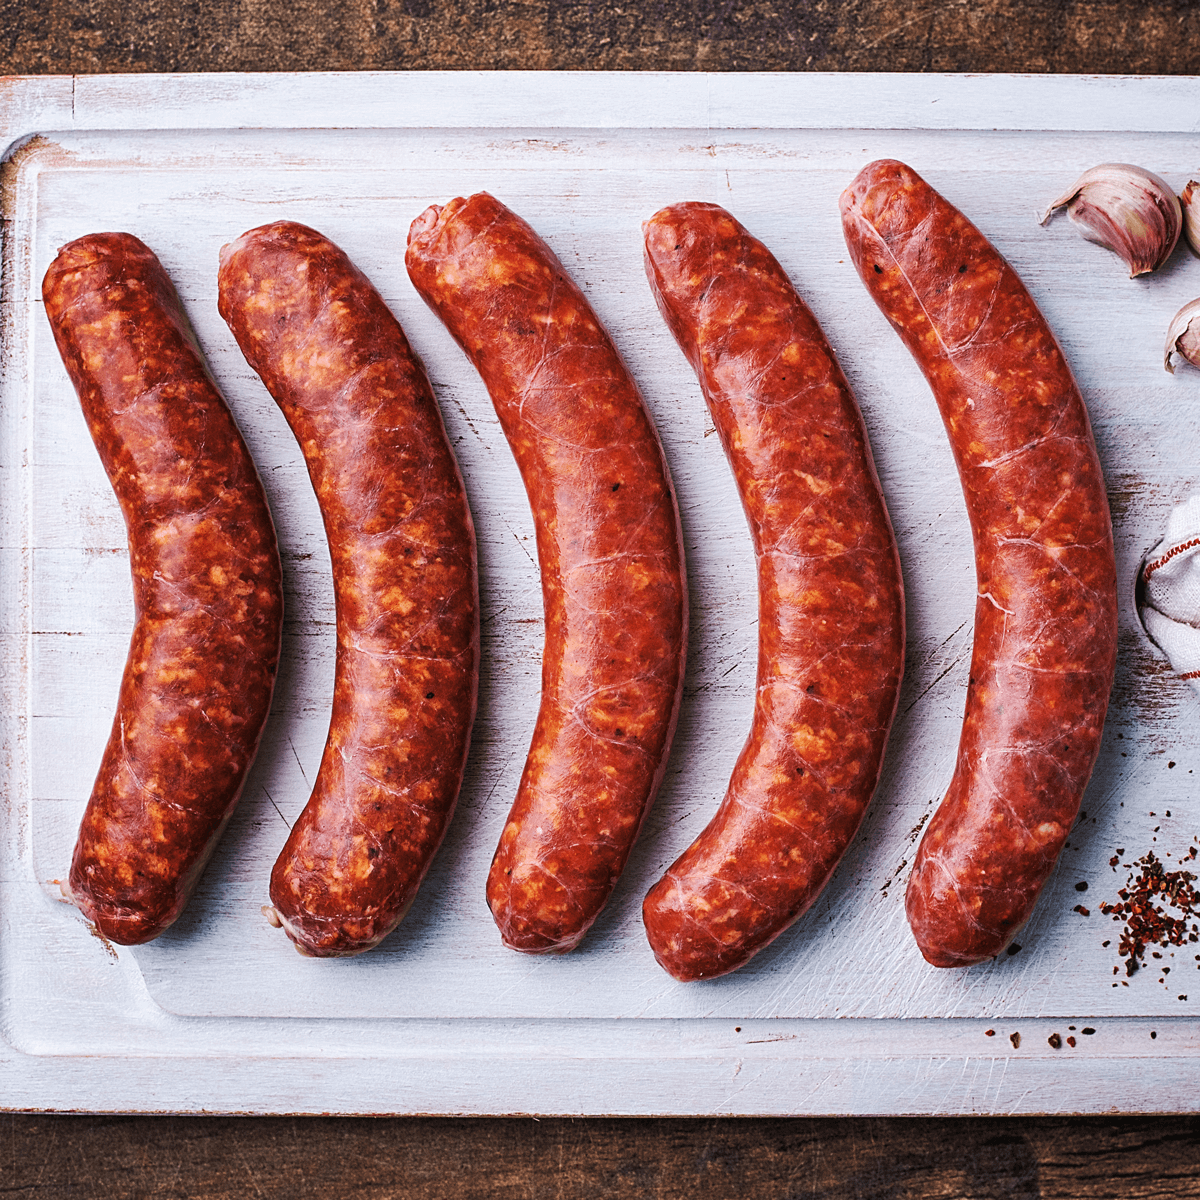 mild italian sausages from Goodfood